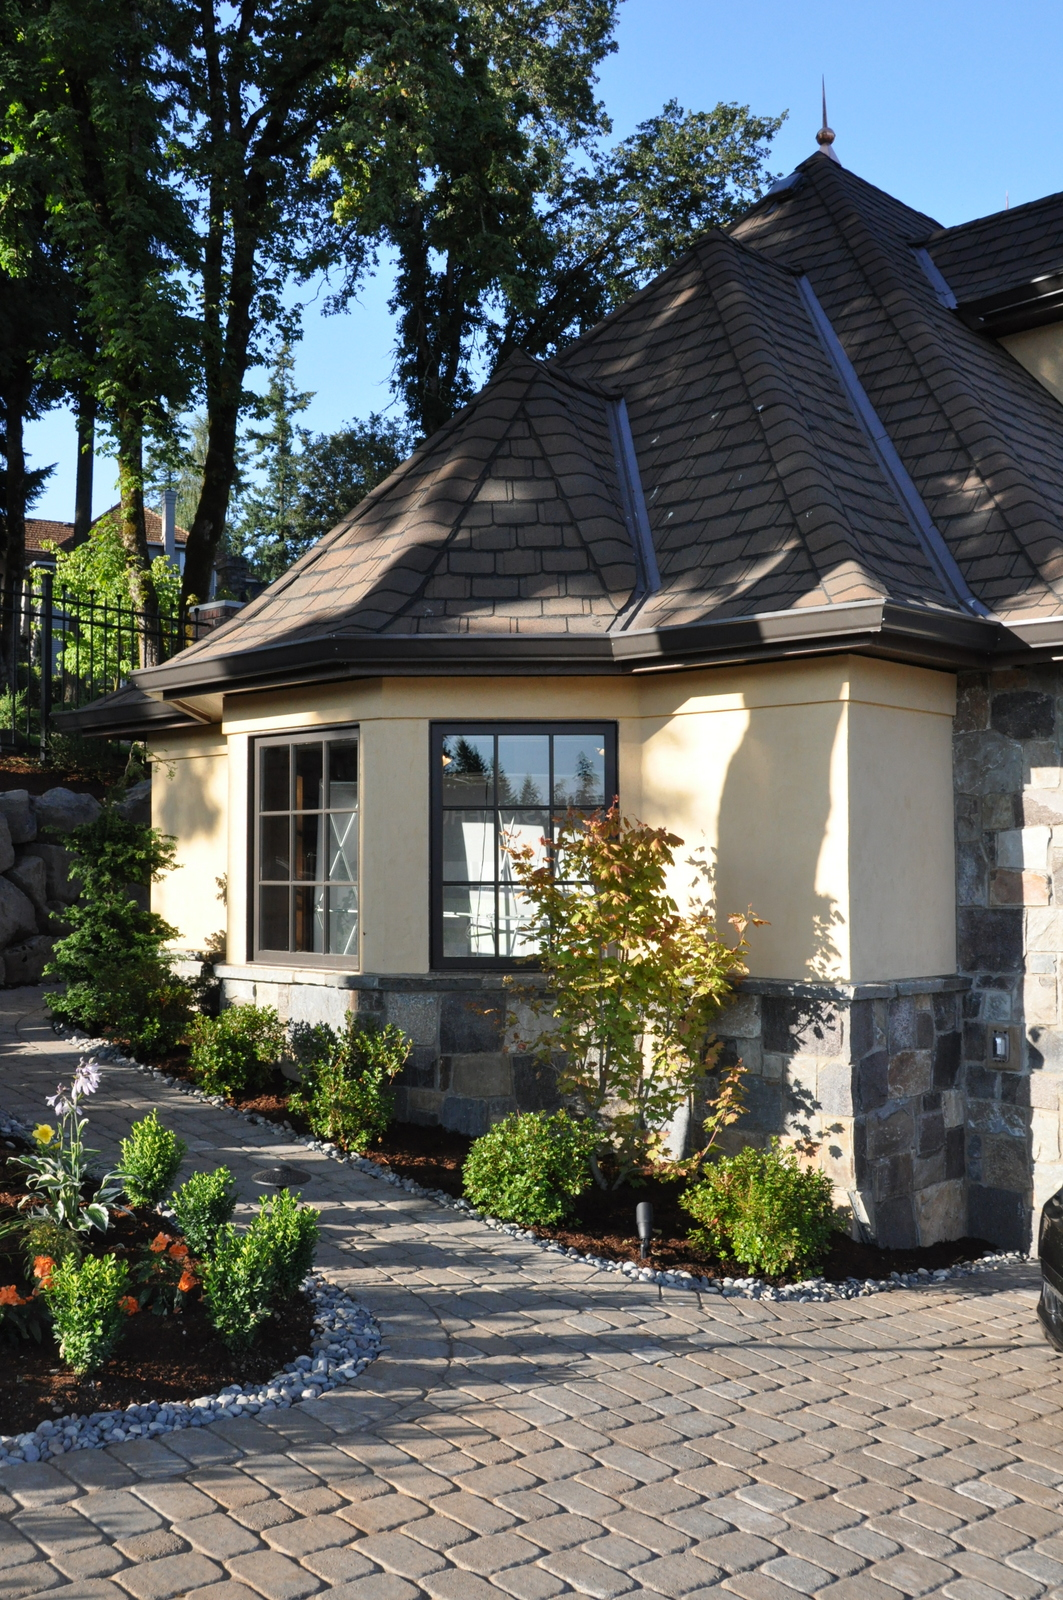 Pin by Victoria Thomas on EXTERIORS (With images) | House ...